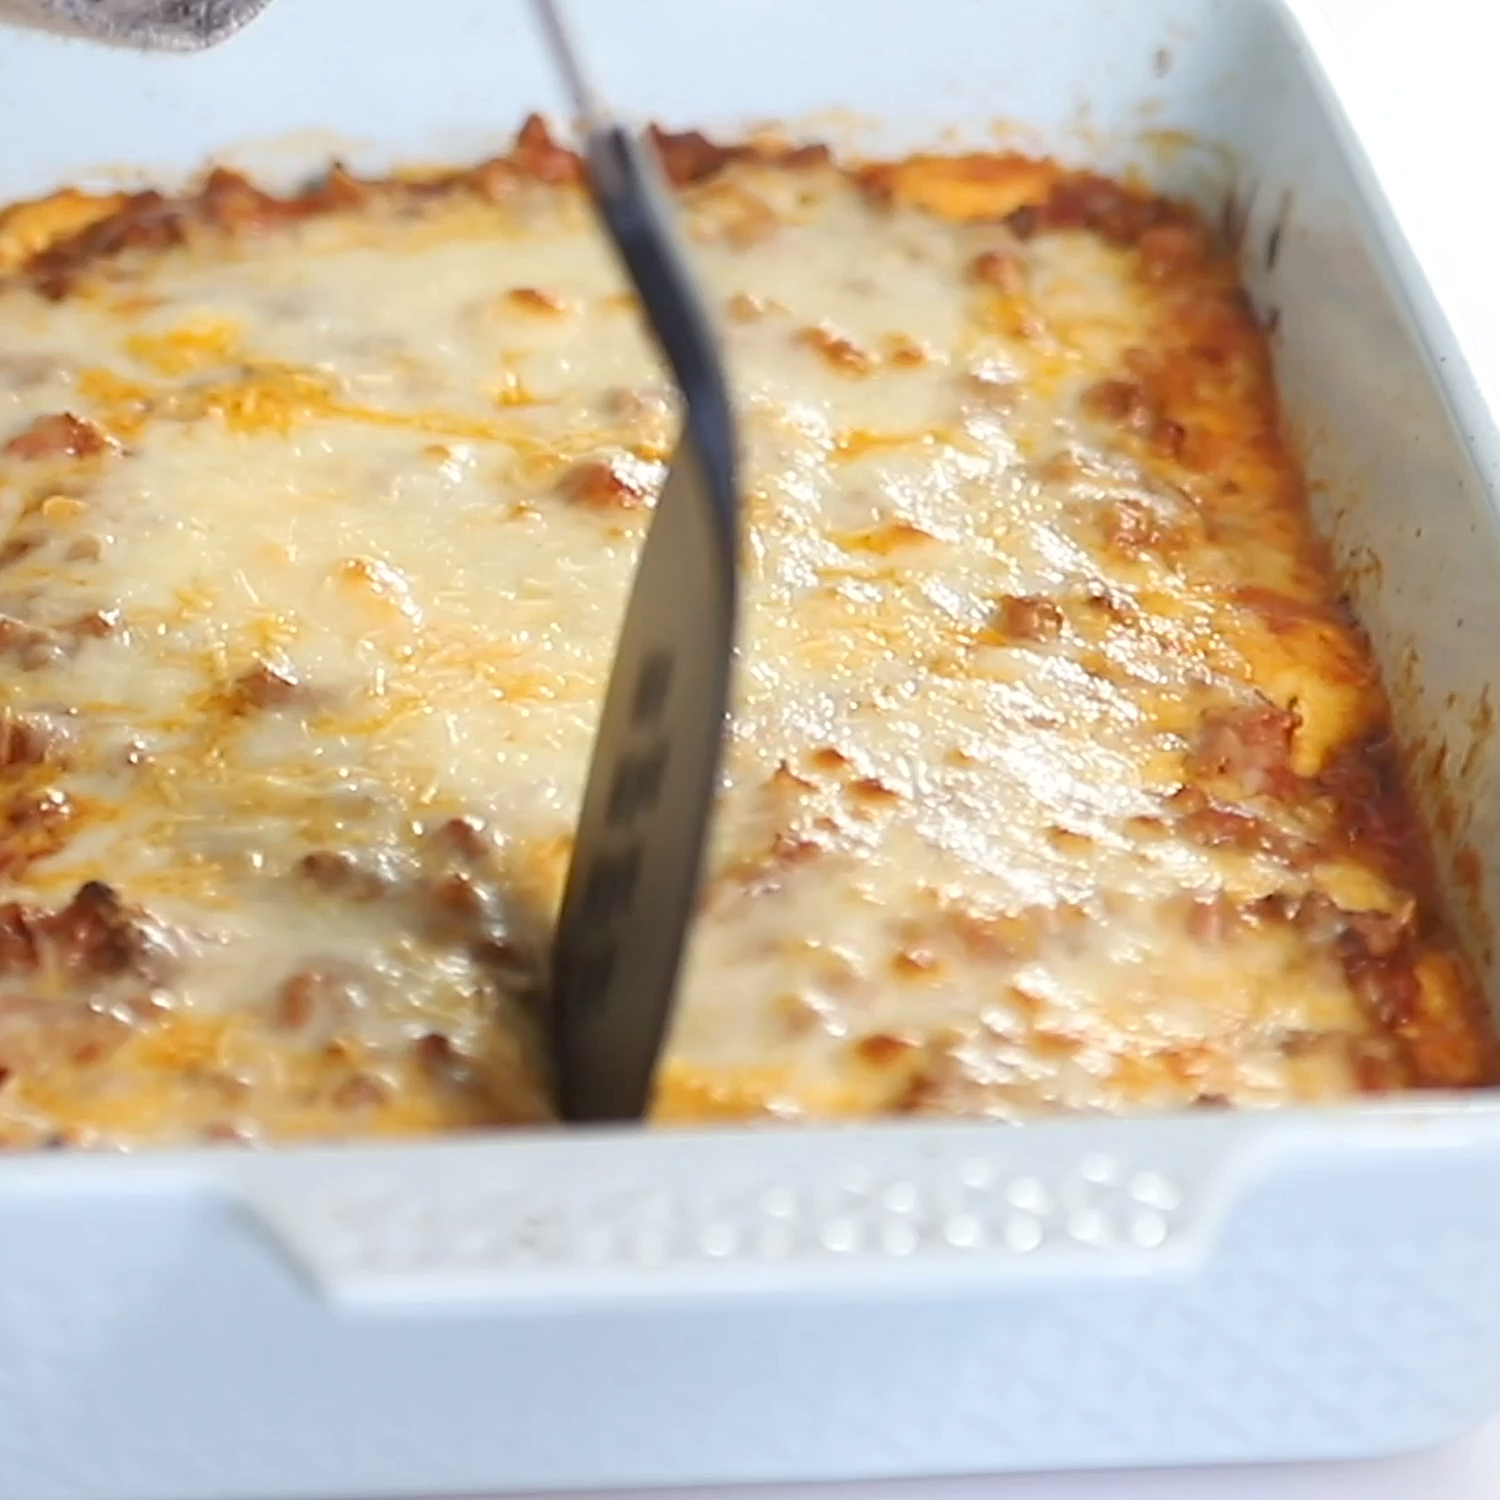 When I want lasagna, I want unmistakable comfort food.  This keto lasagna definitely fits the bill because it is nothing but the good stuff.  No zucchini noodles to be found!  The best part is this lasagna recipe can be made any night of the week.  It's that easy!When #I #want #lasagna, #I #want #unmistakable #comfort #food. # #This #keto #lasagna #definitely #fits #the #bill #because #it #is #nothing #but #the #good #stuff. # #No #zucchini #noodles #to #be #found! # #The #best #part #is #this #